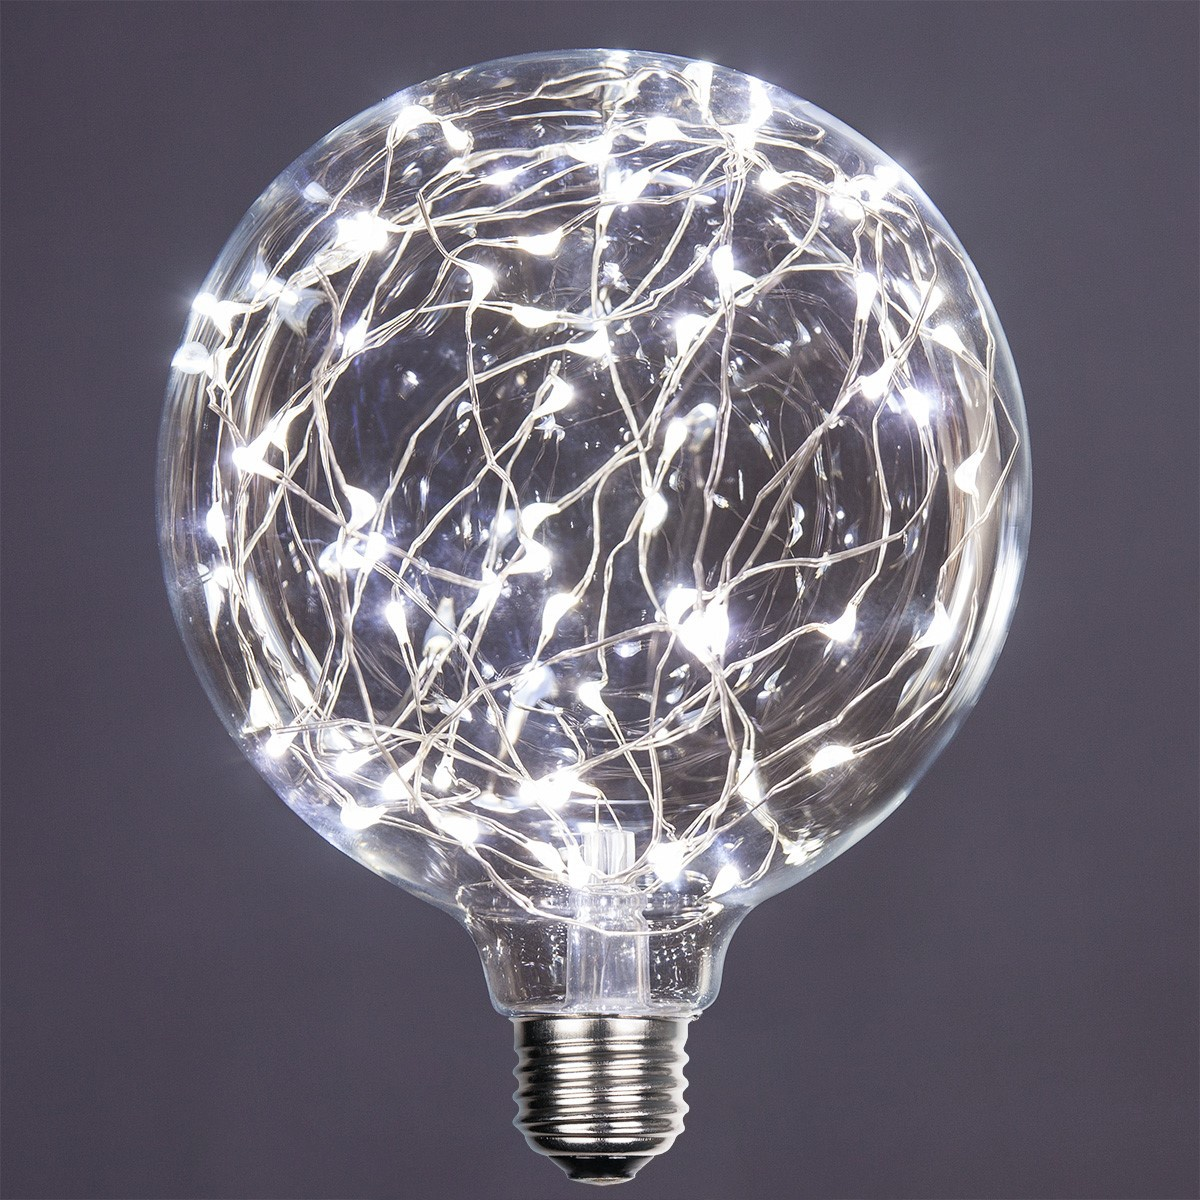 G125 Cool White Ledimagine Tm Fairy Light Bulb